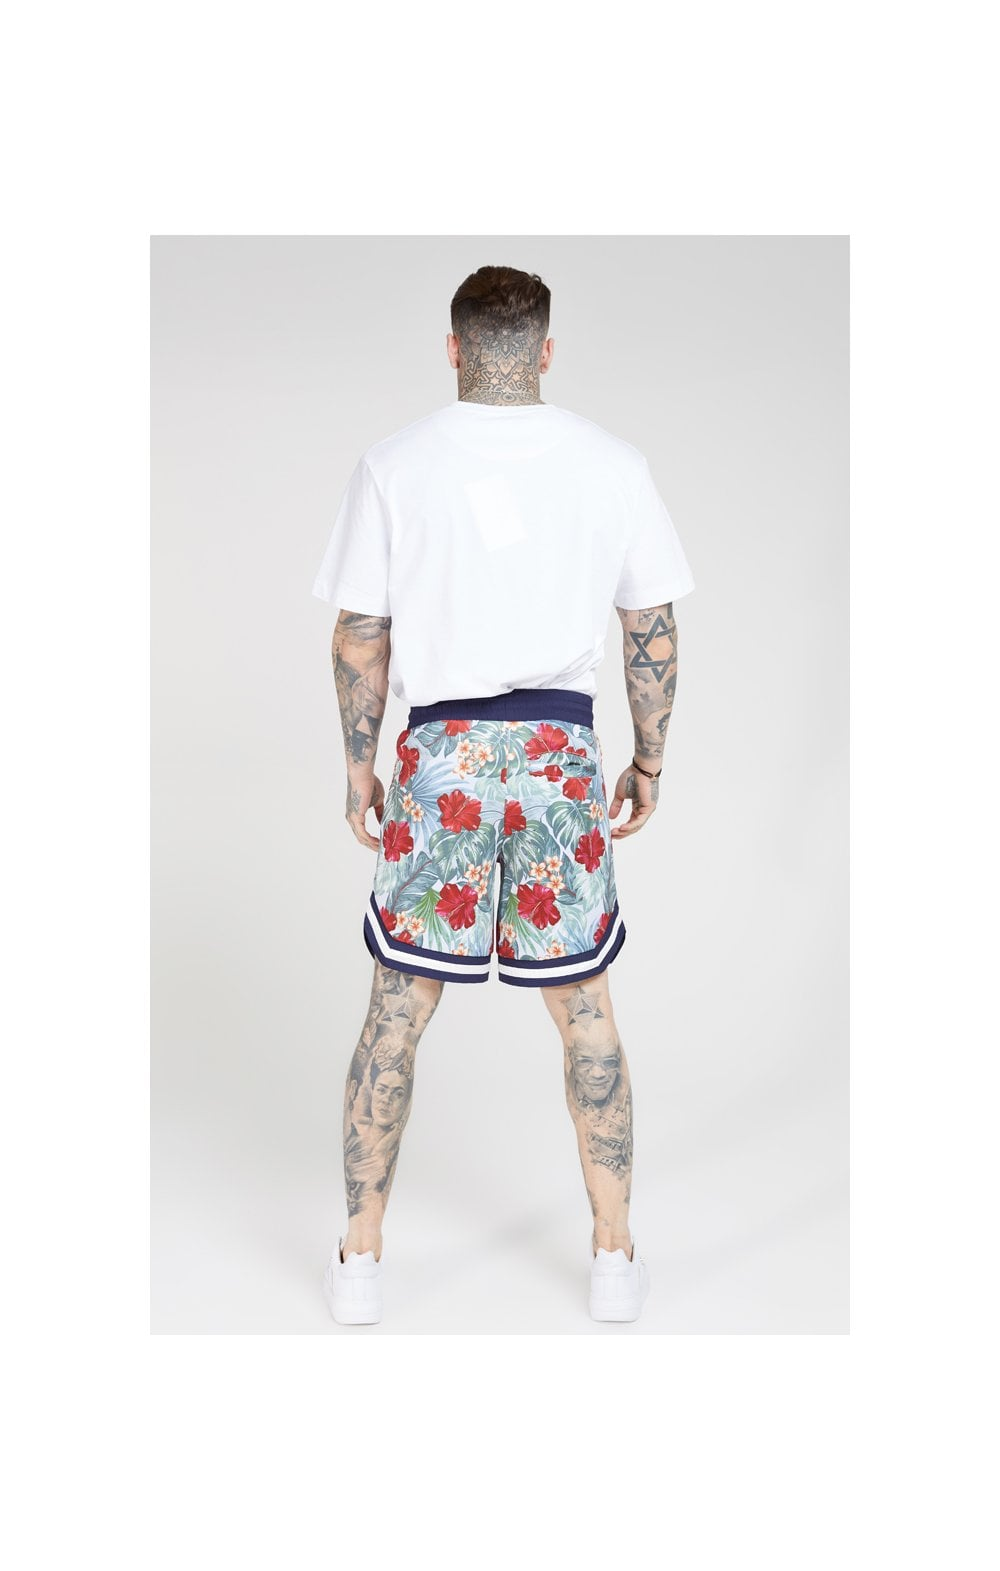 SikSilk 70's Floral Basketball Shorts - Navy & White (4)